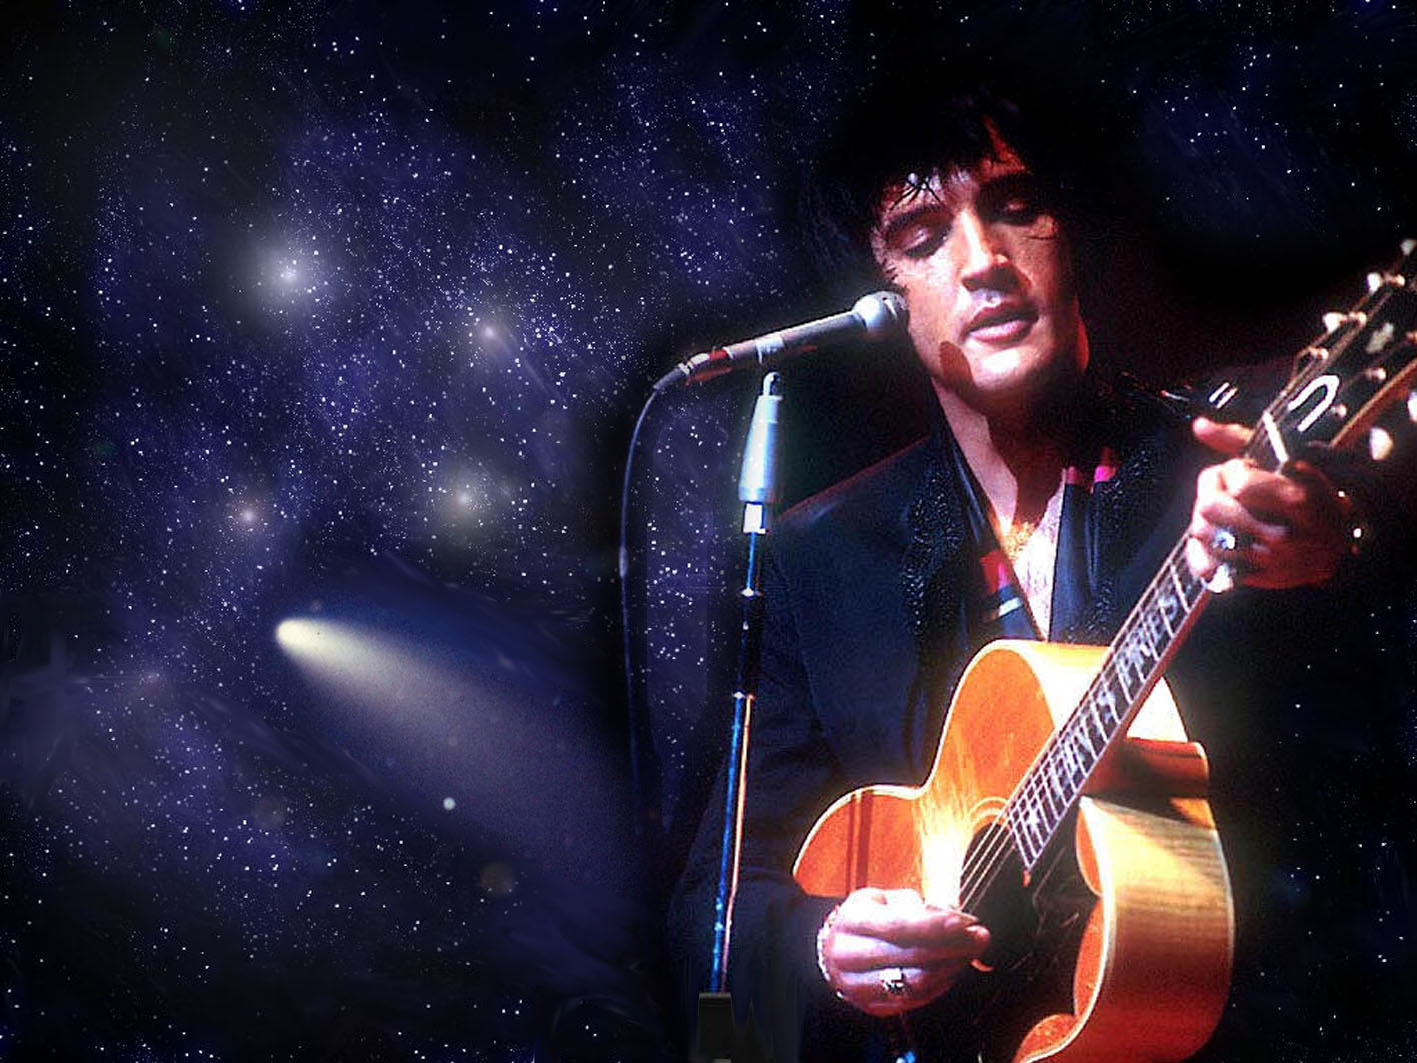 elvis presley wallpapers 01 - photo #13